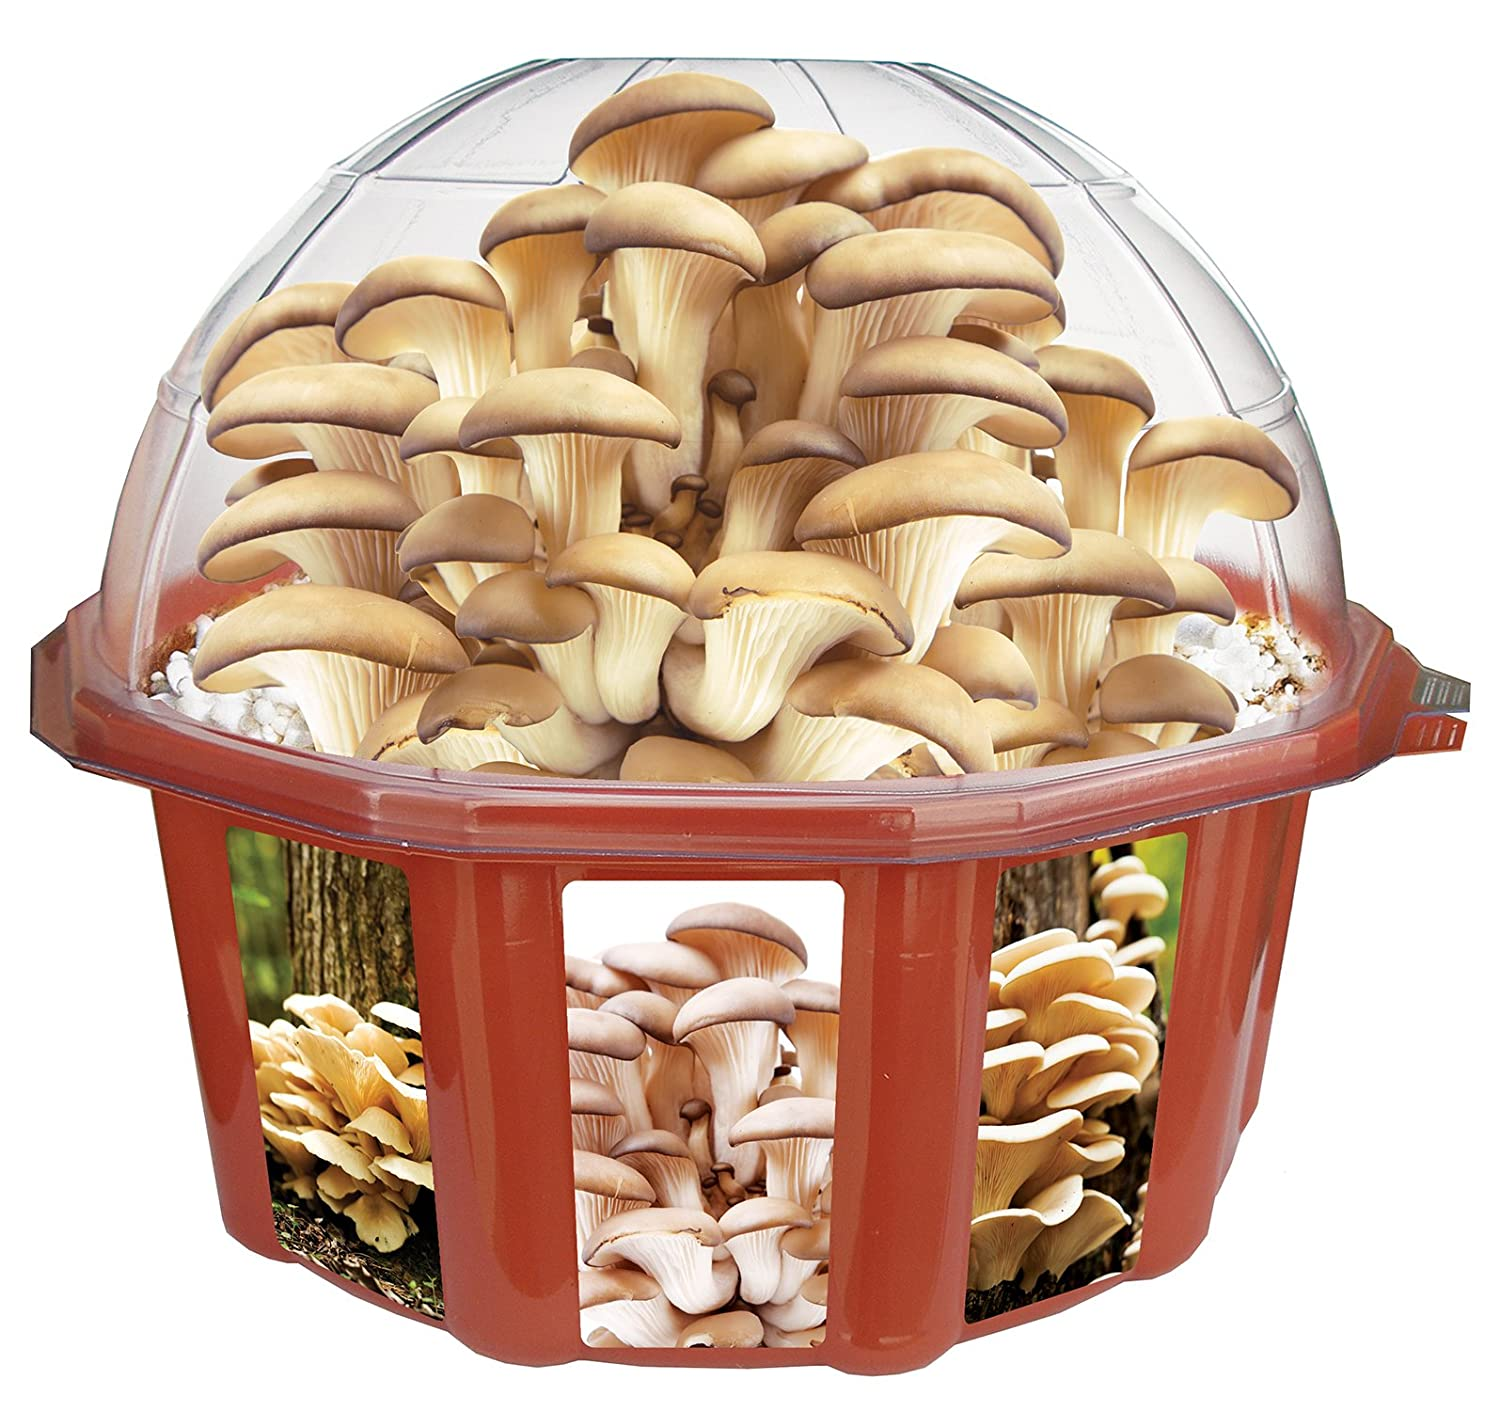 Design Your Own Kit Home Perth How To Make A Homemade Mushroom Grow Kit Homemade Ftempo